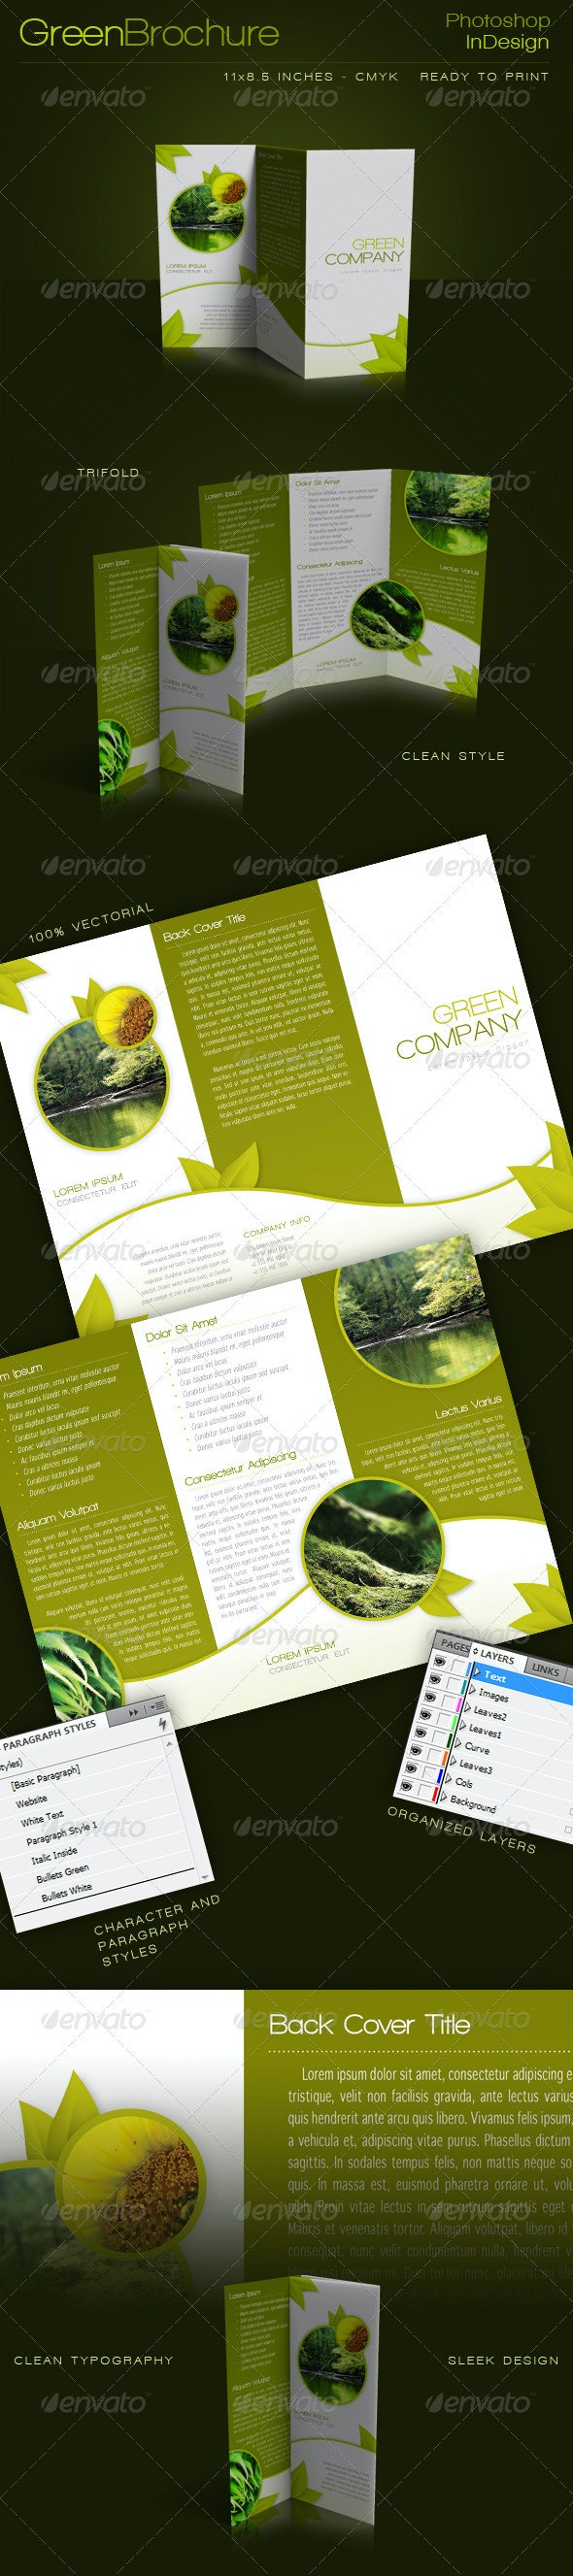 Green Trifold Brochure InDesign Template - Corporate Brochures